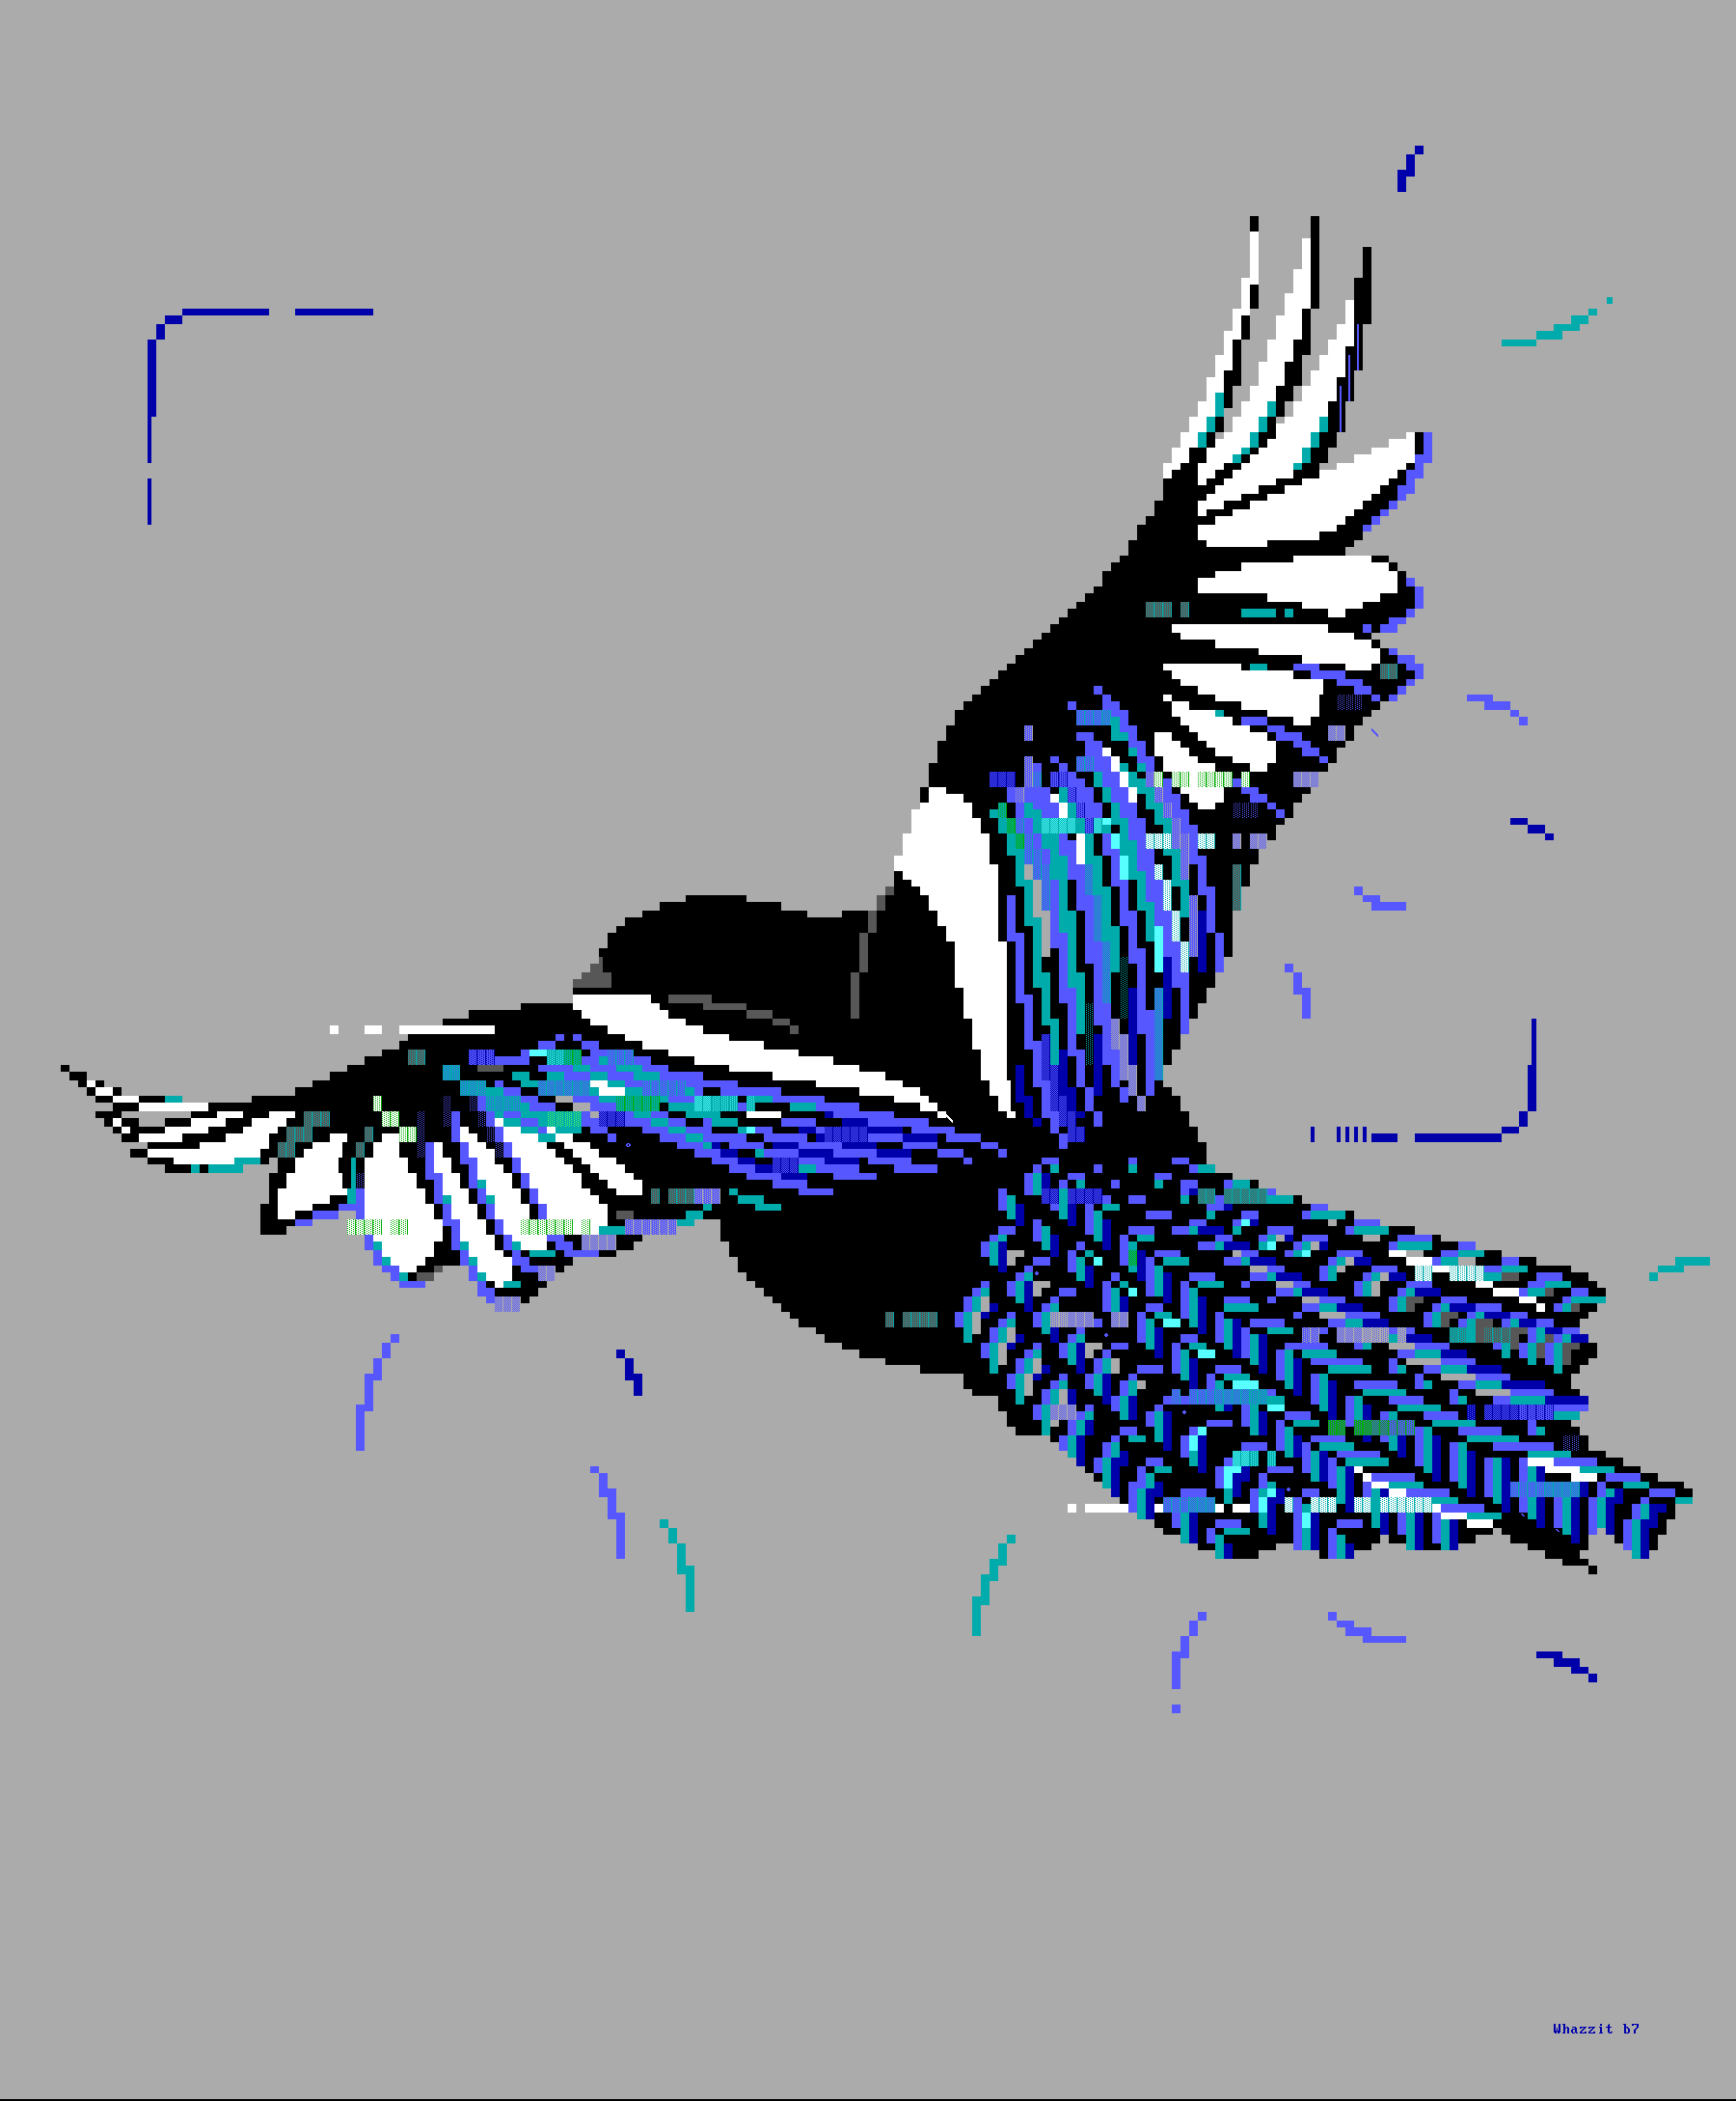 bird, magpie, fly, flying, wing, wings, whazzit, blue, gray, white